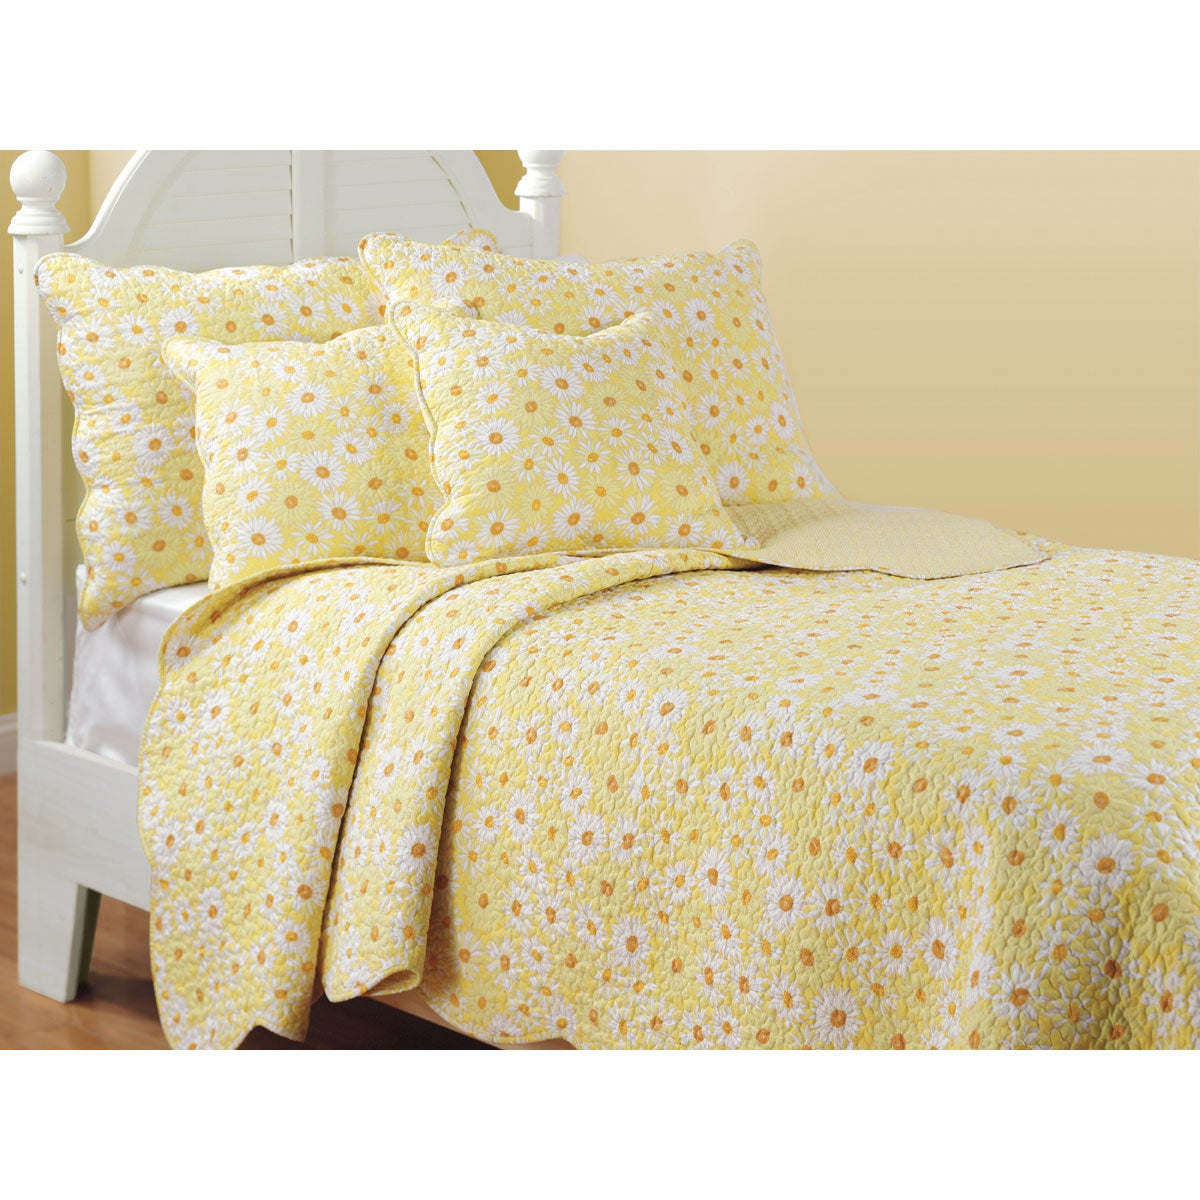 Miss Daisy Quilt Set - 12579926 - Overstock.com Shopping - Great Deals on Kids' Bedding